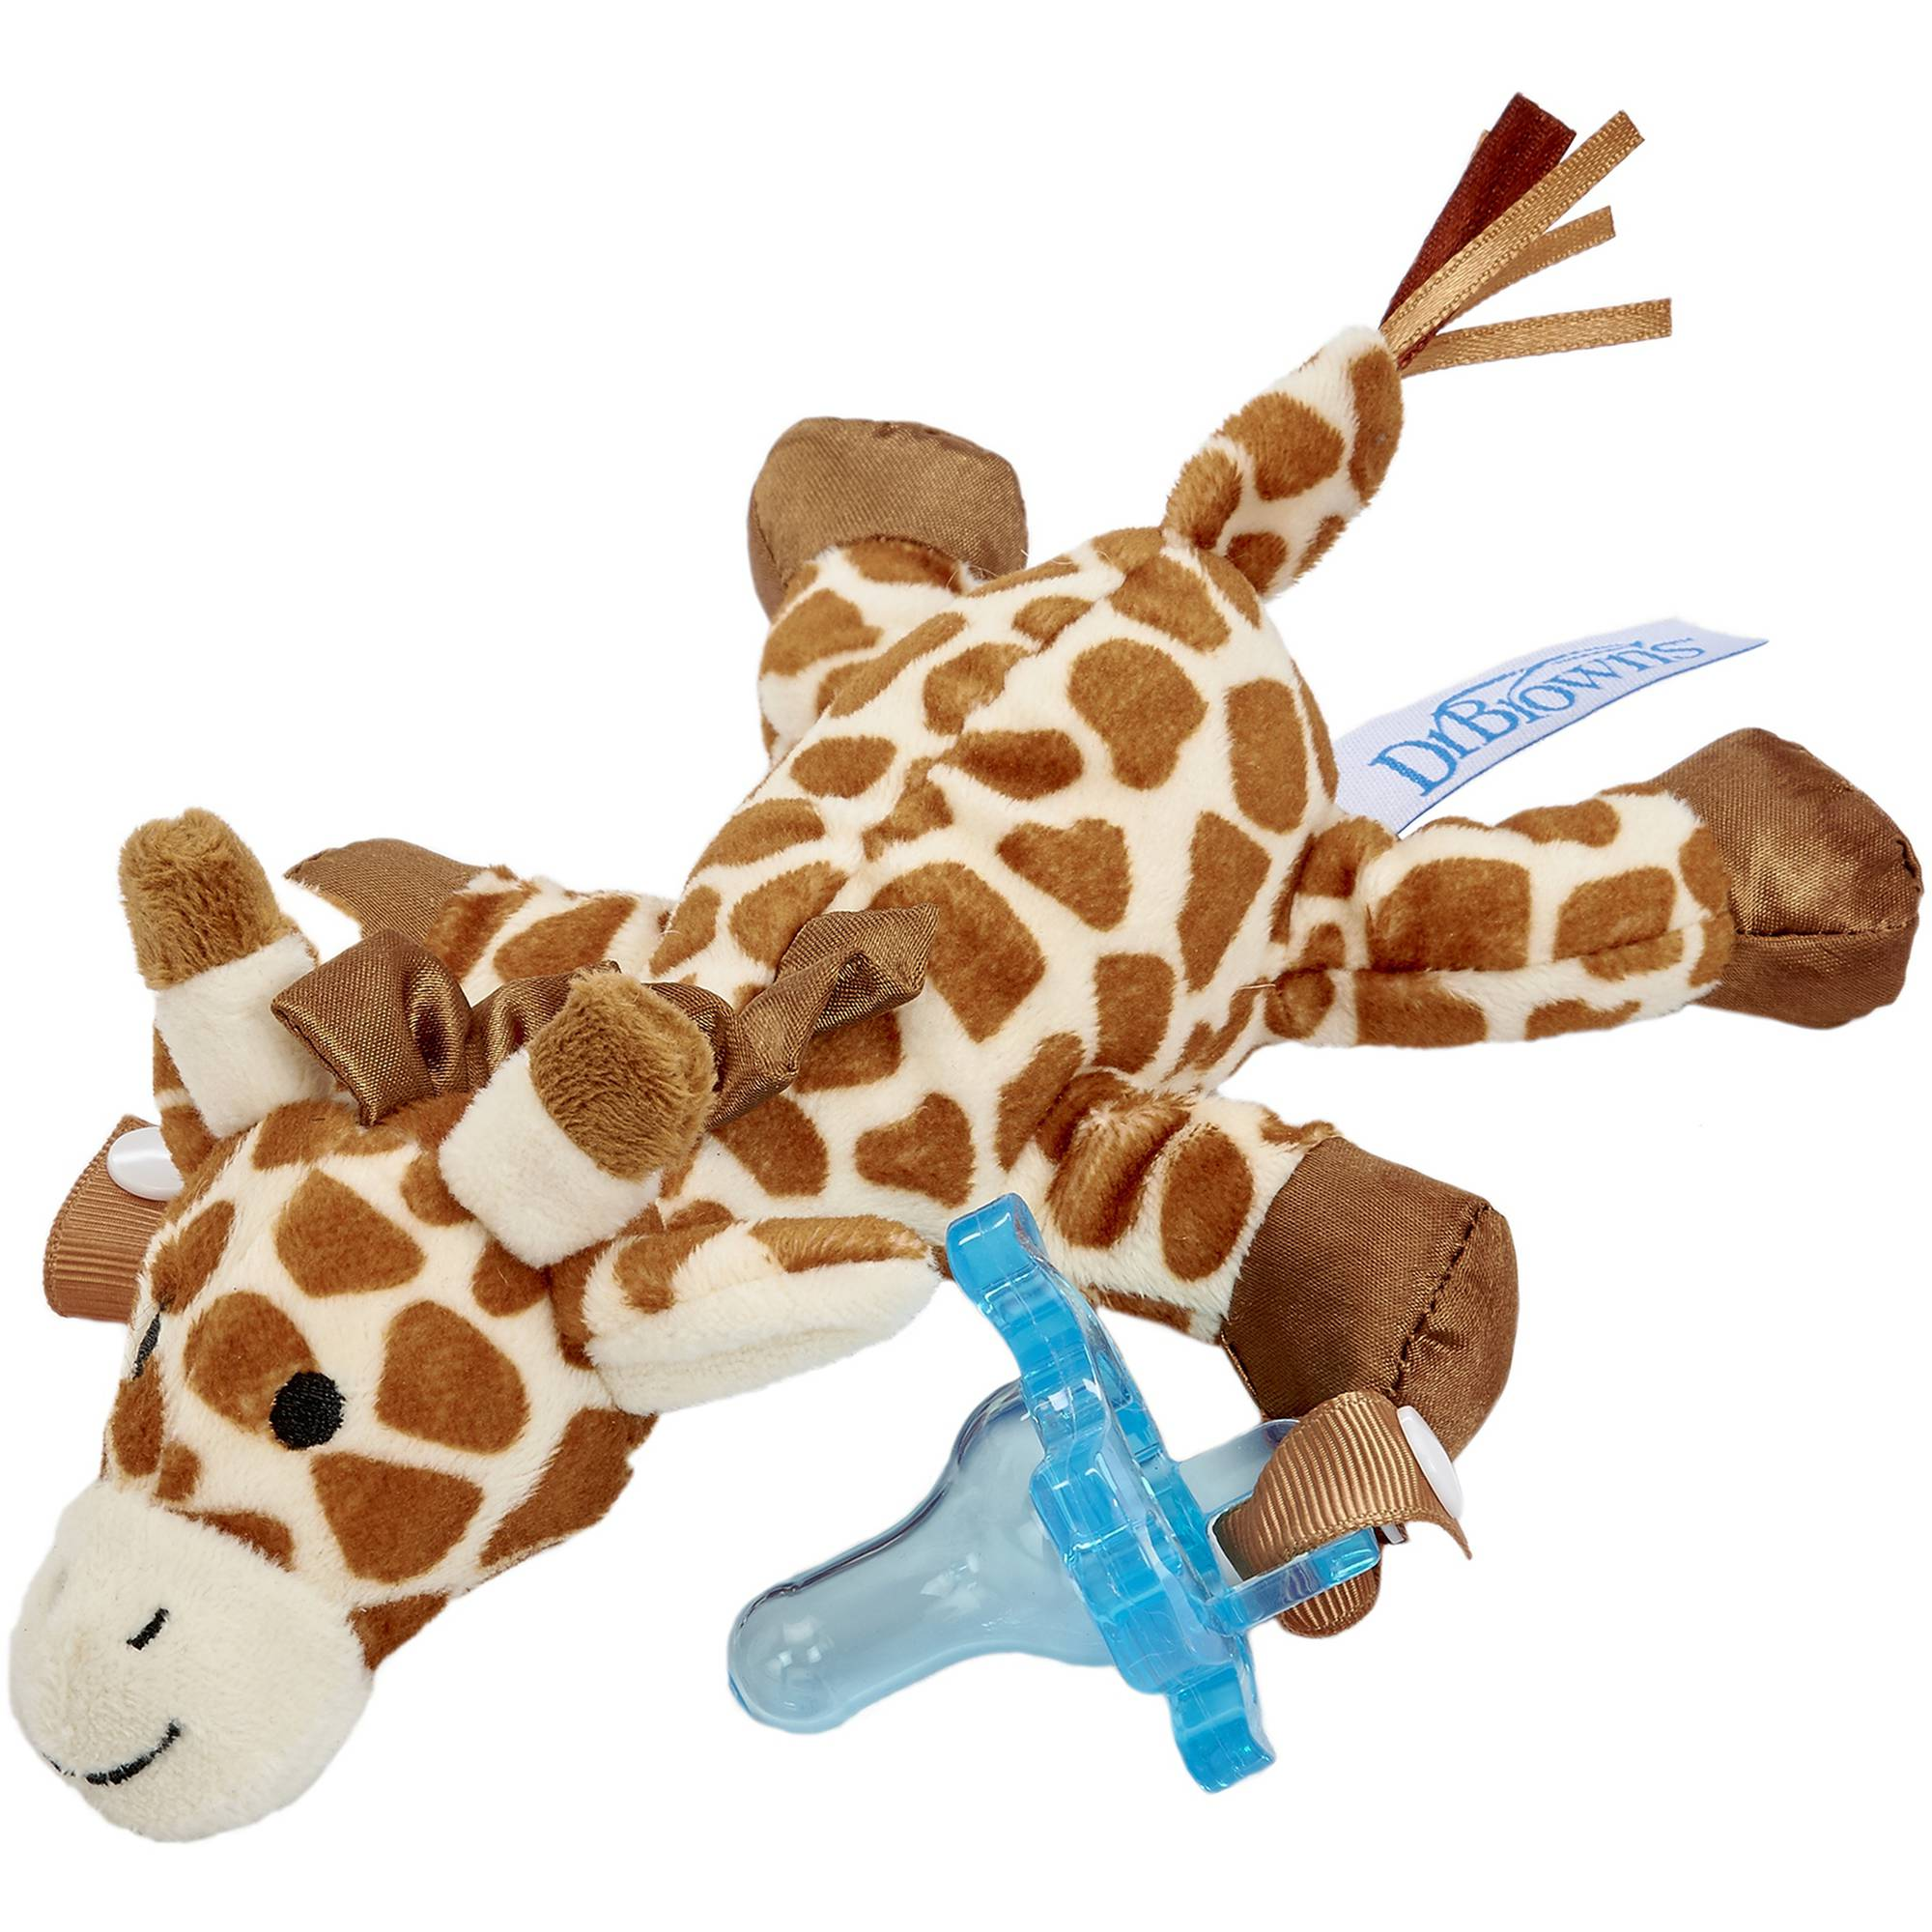 Dr. Brown's Giraffe Lovey Pacifier and Teether Holder with Blue 1-Piece Pacifier, BPA-Free